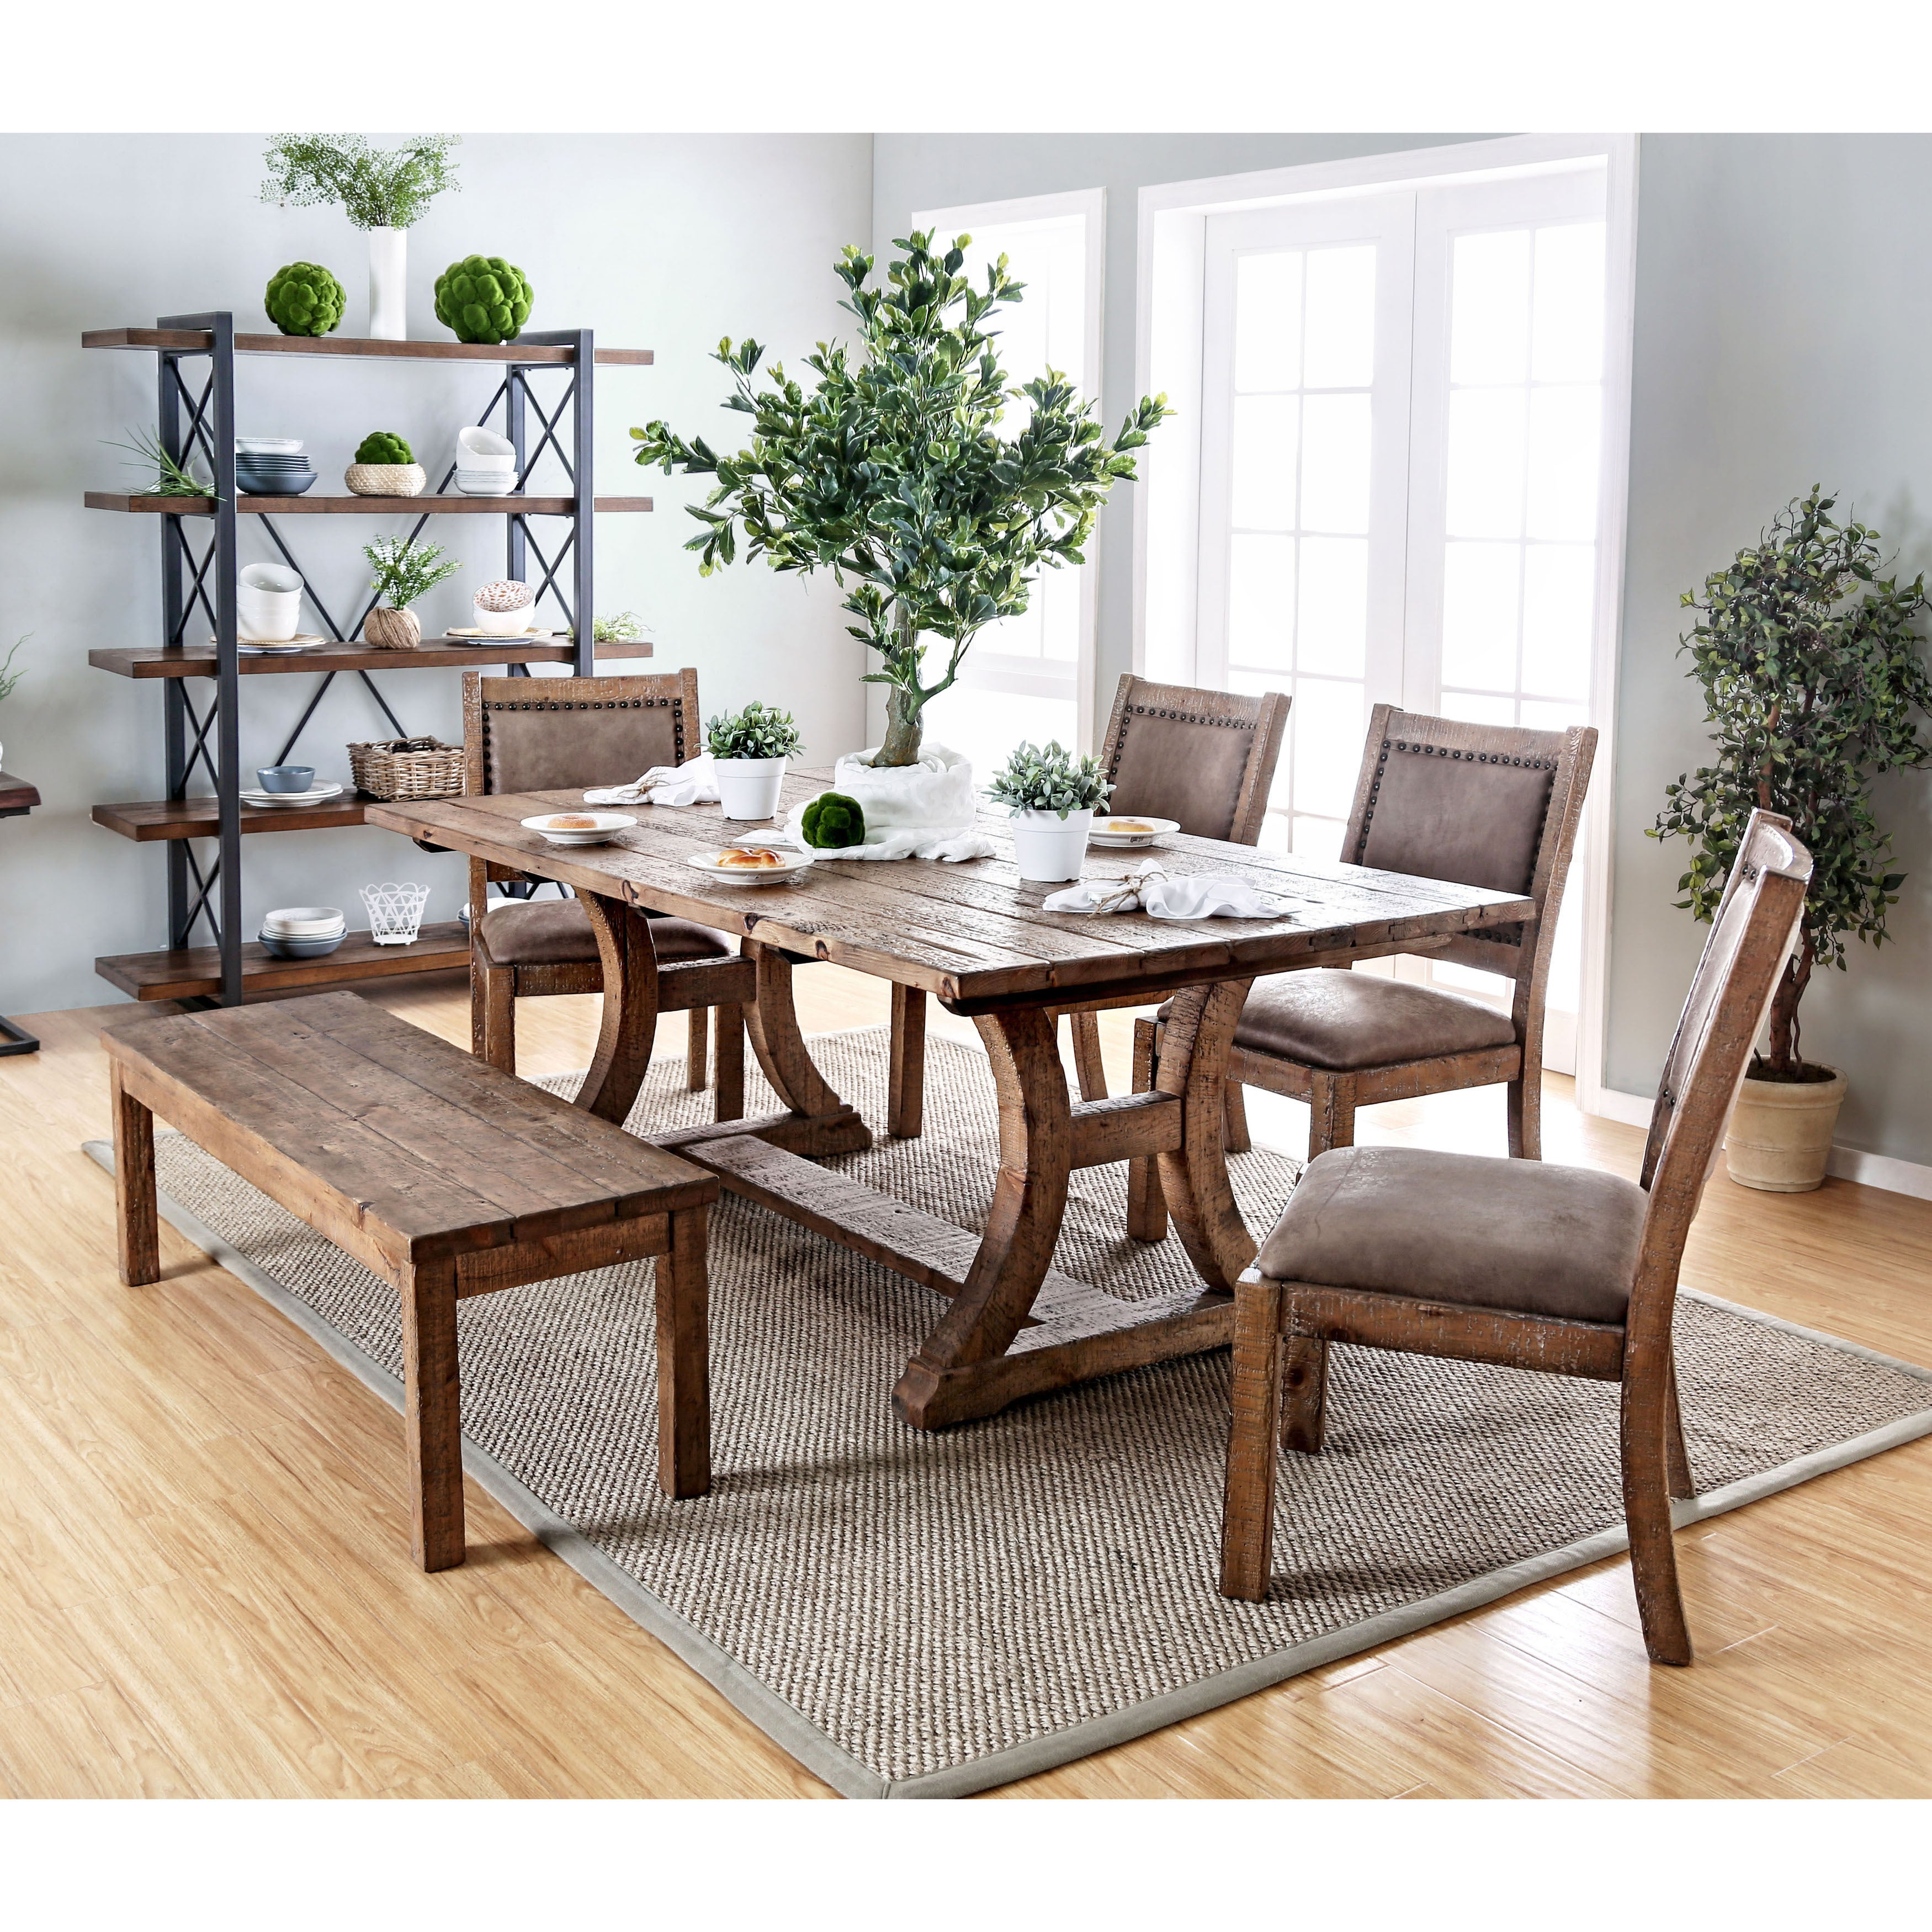 Matthias industrial rustic pine dining table by foa rustic pine by furniture of america